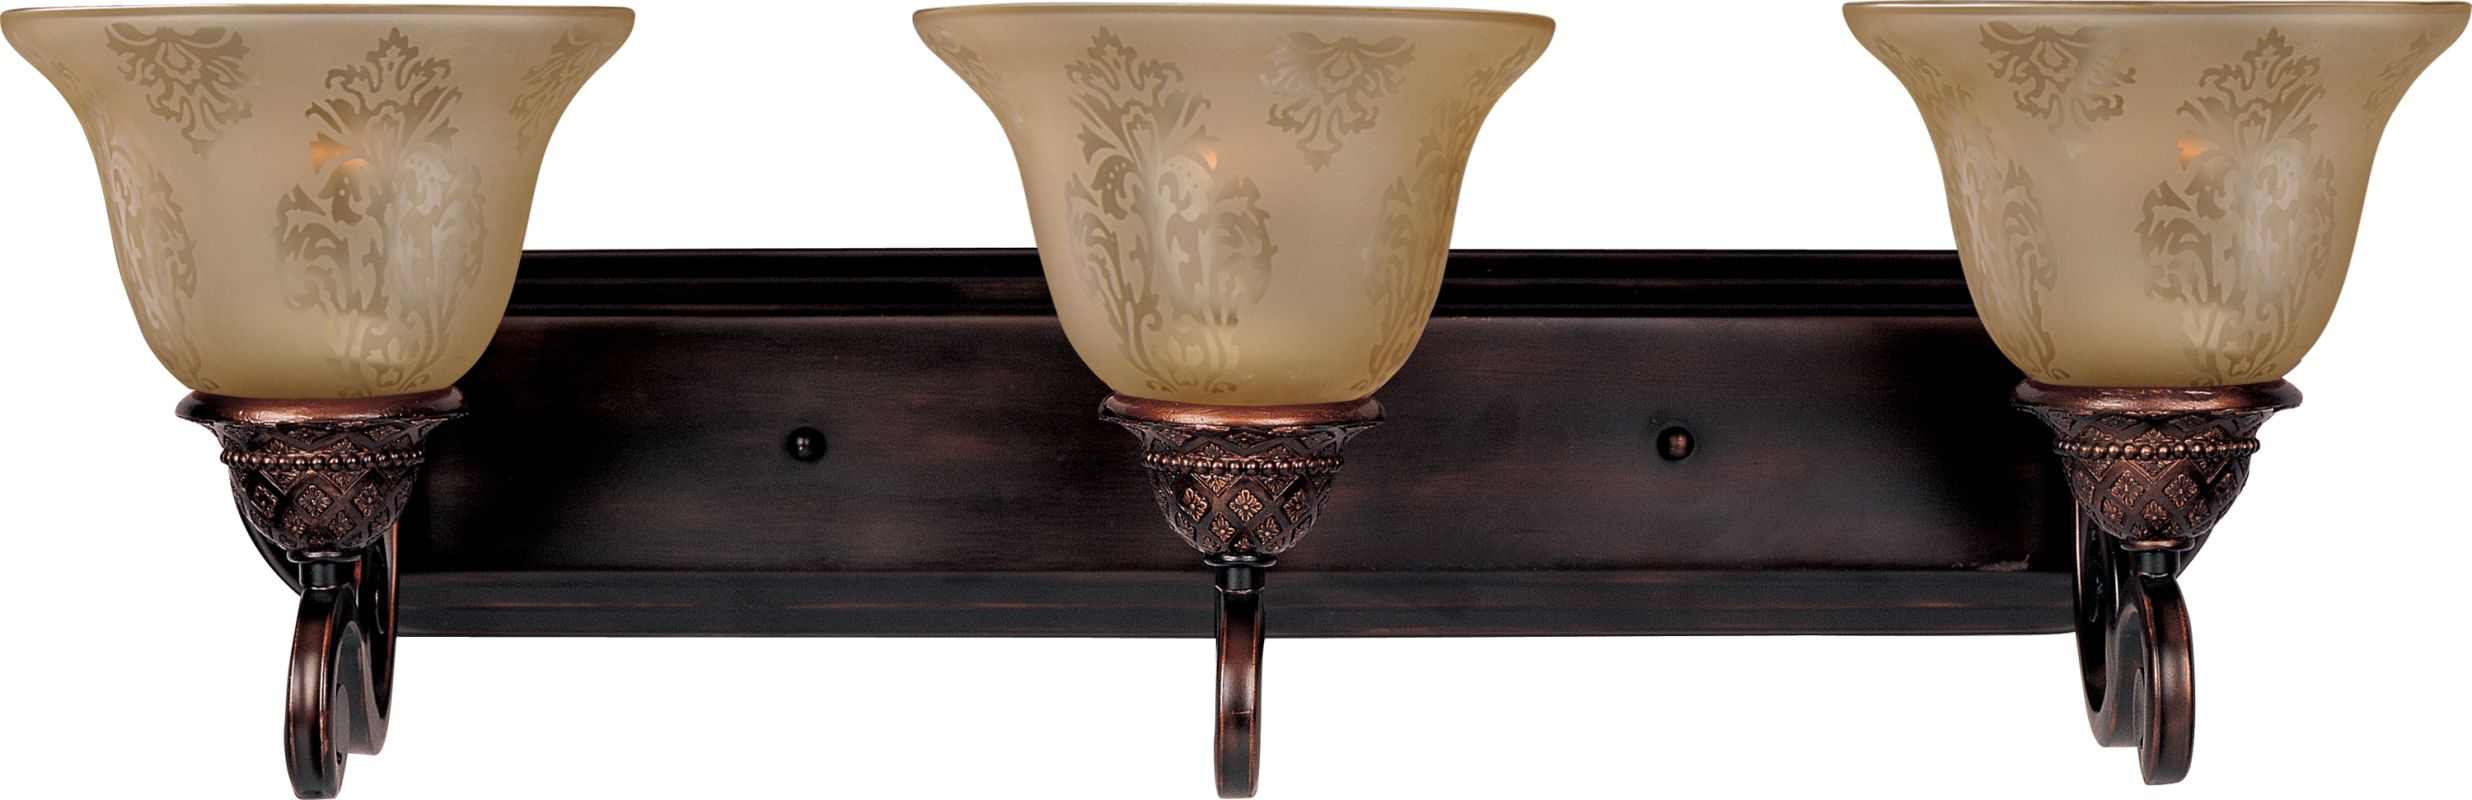 """Maxim 11232 3 Light 26"""" Wide Bathroom Fixture from the Symphony"""